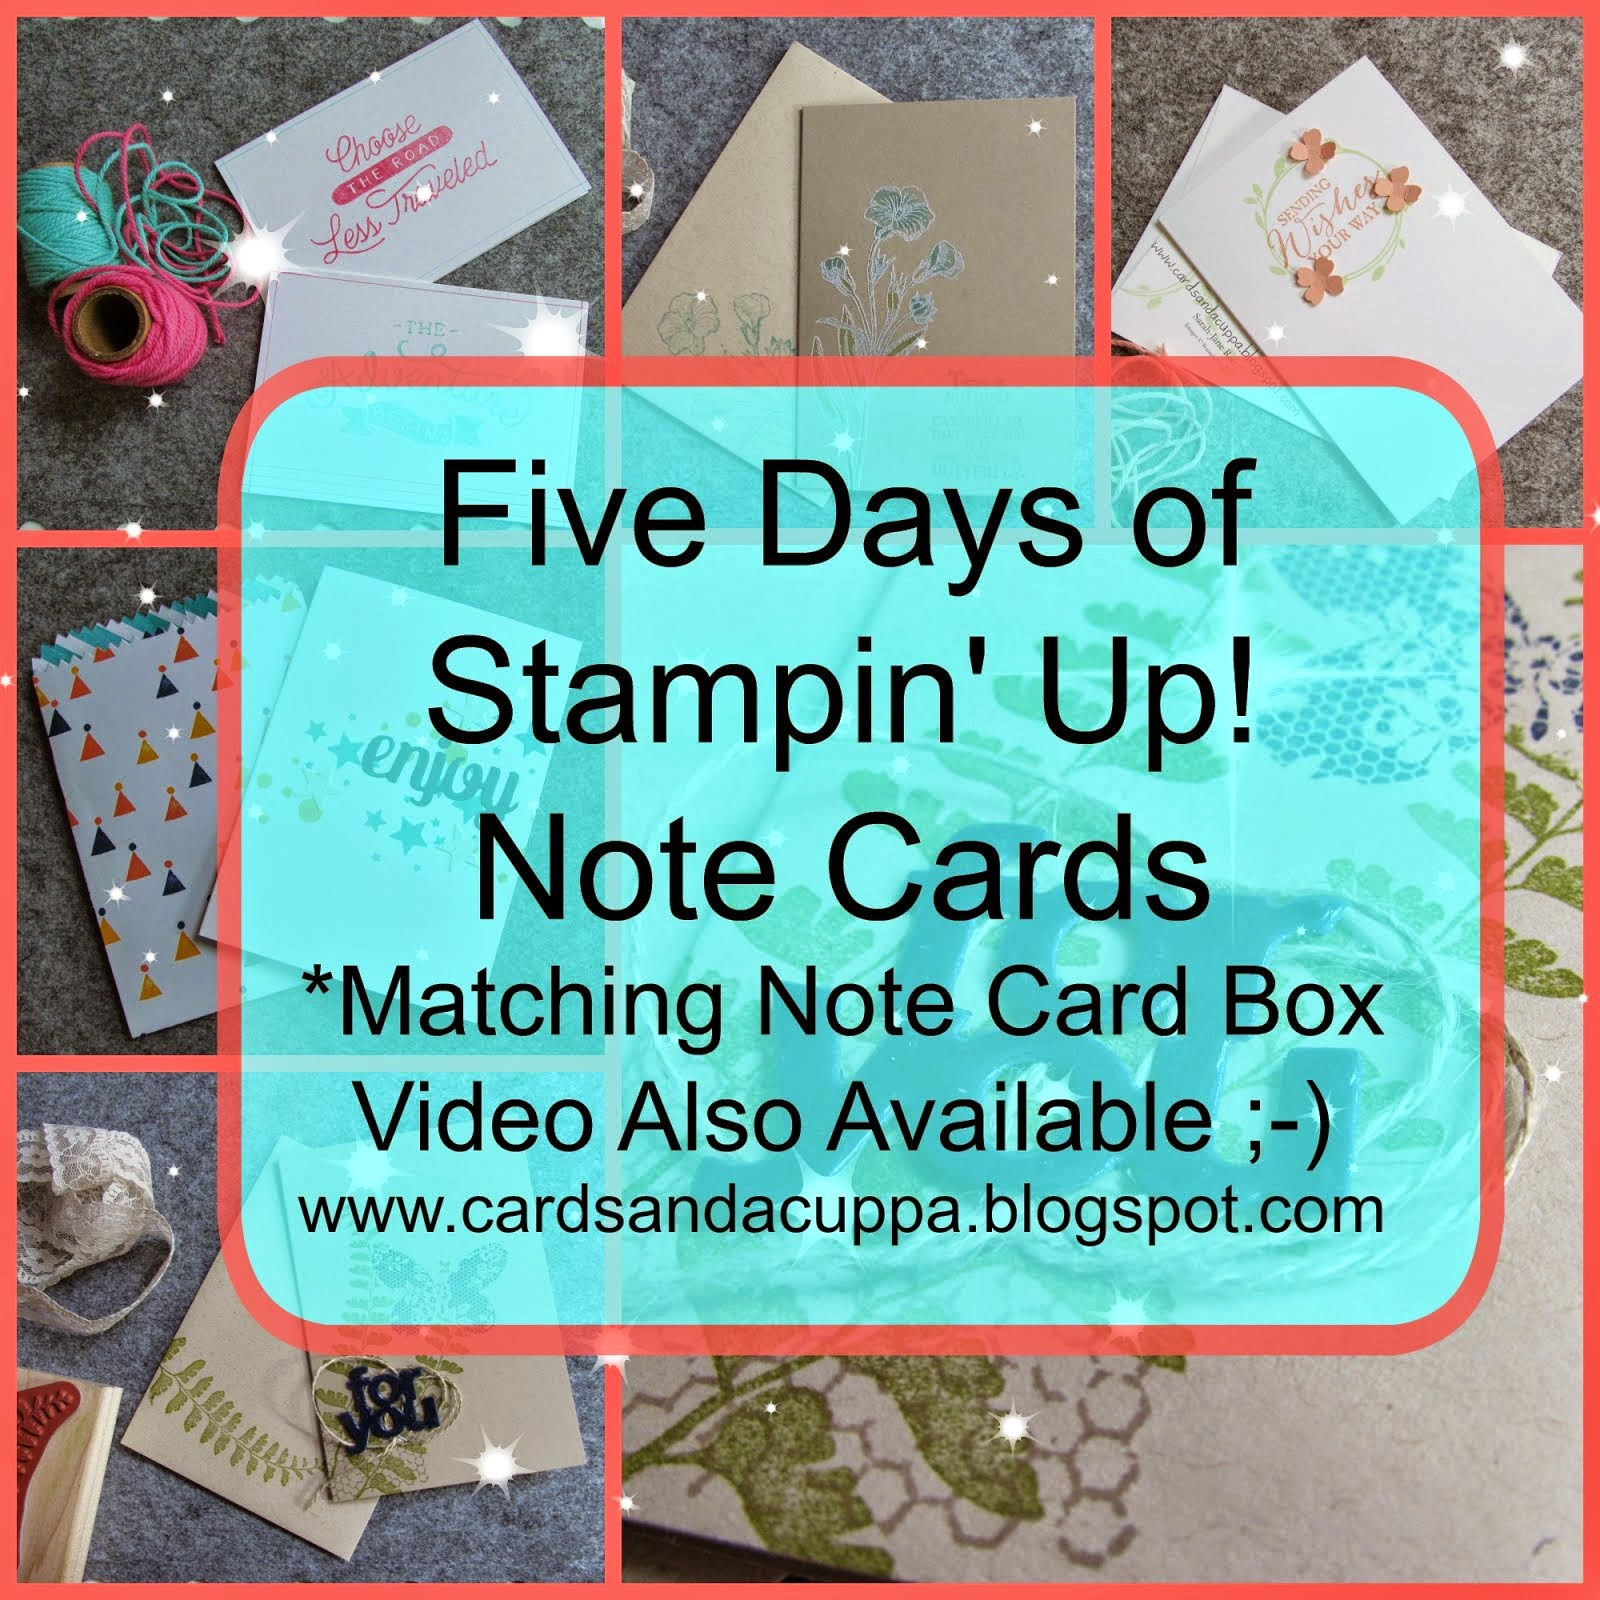 Five Days of Note Cards including a Video Tutorial for a Box to store them in!